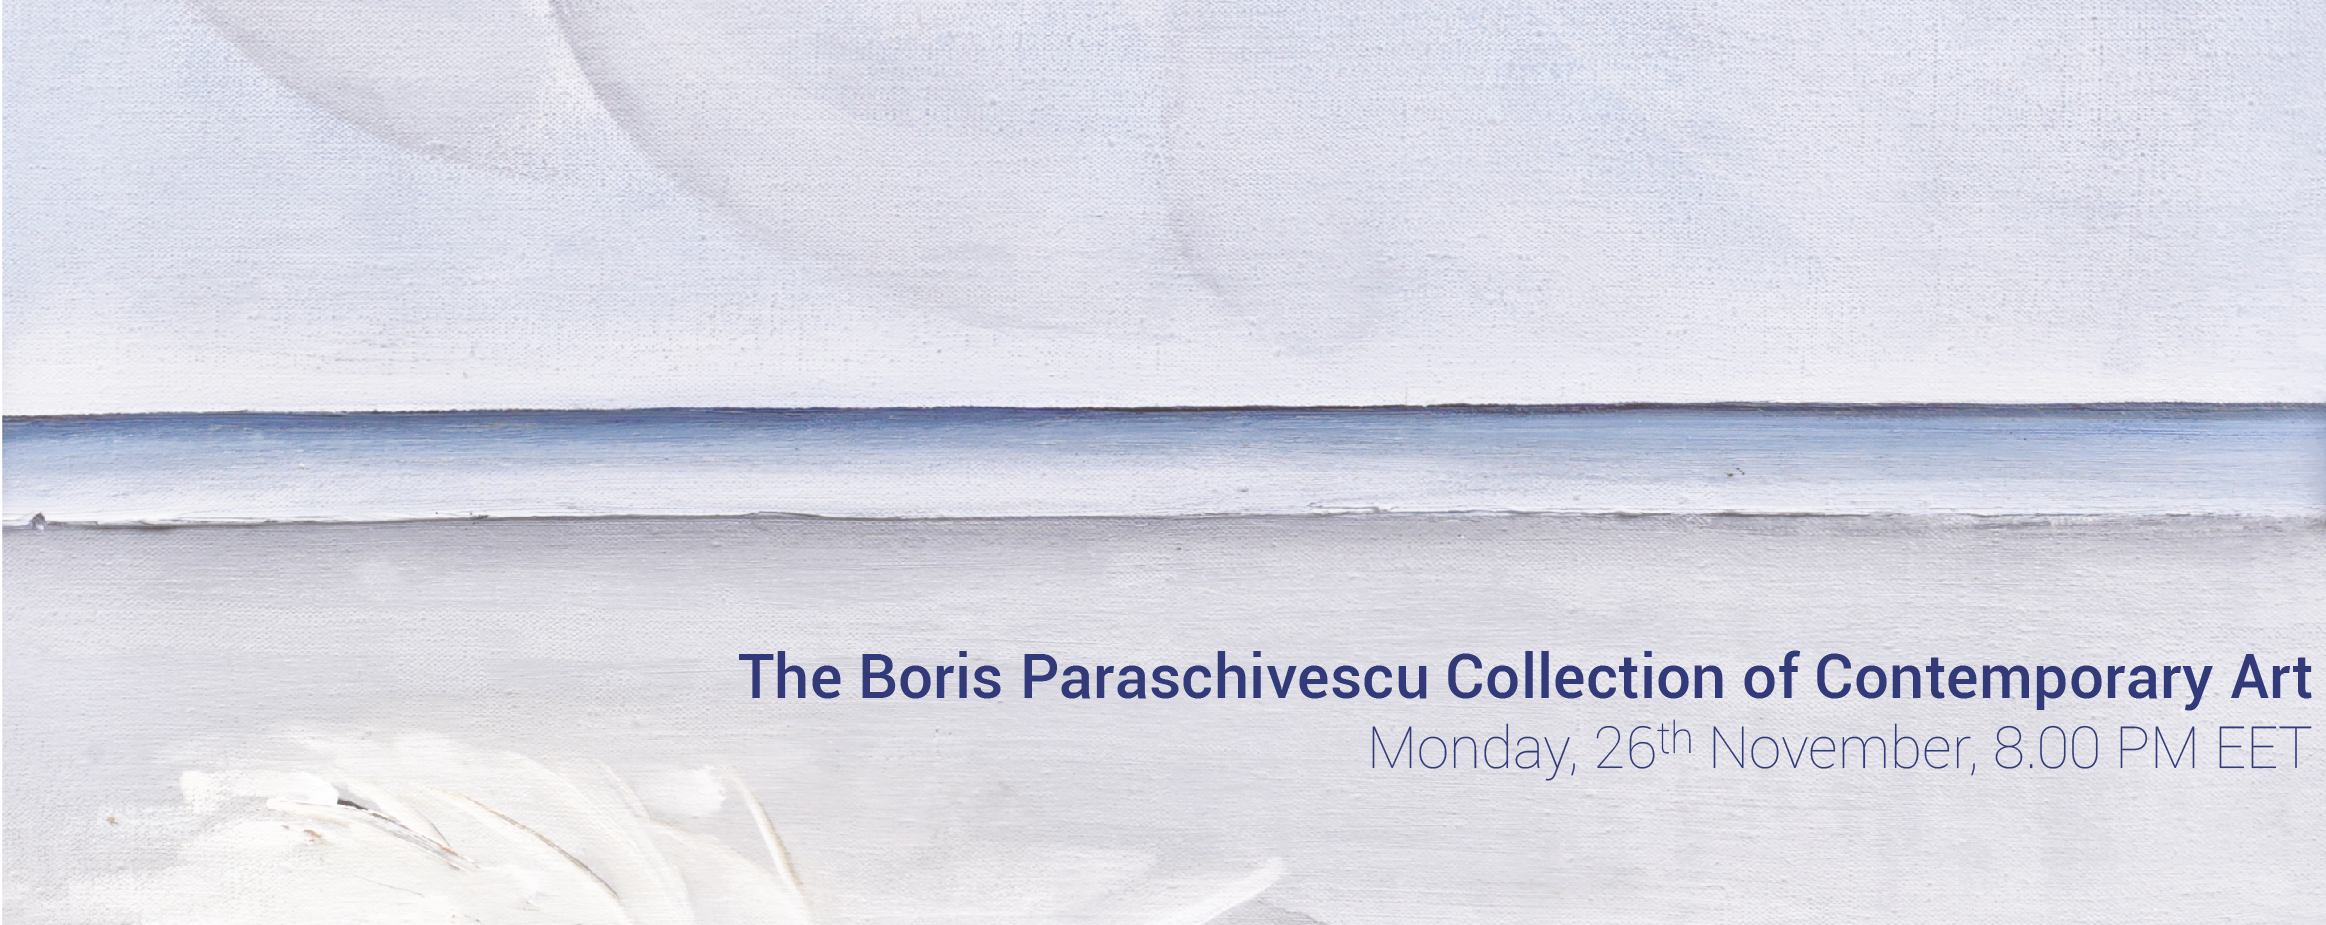 The Boris Paraschivescu Collection of Contemporary Art